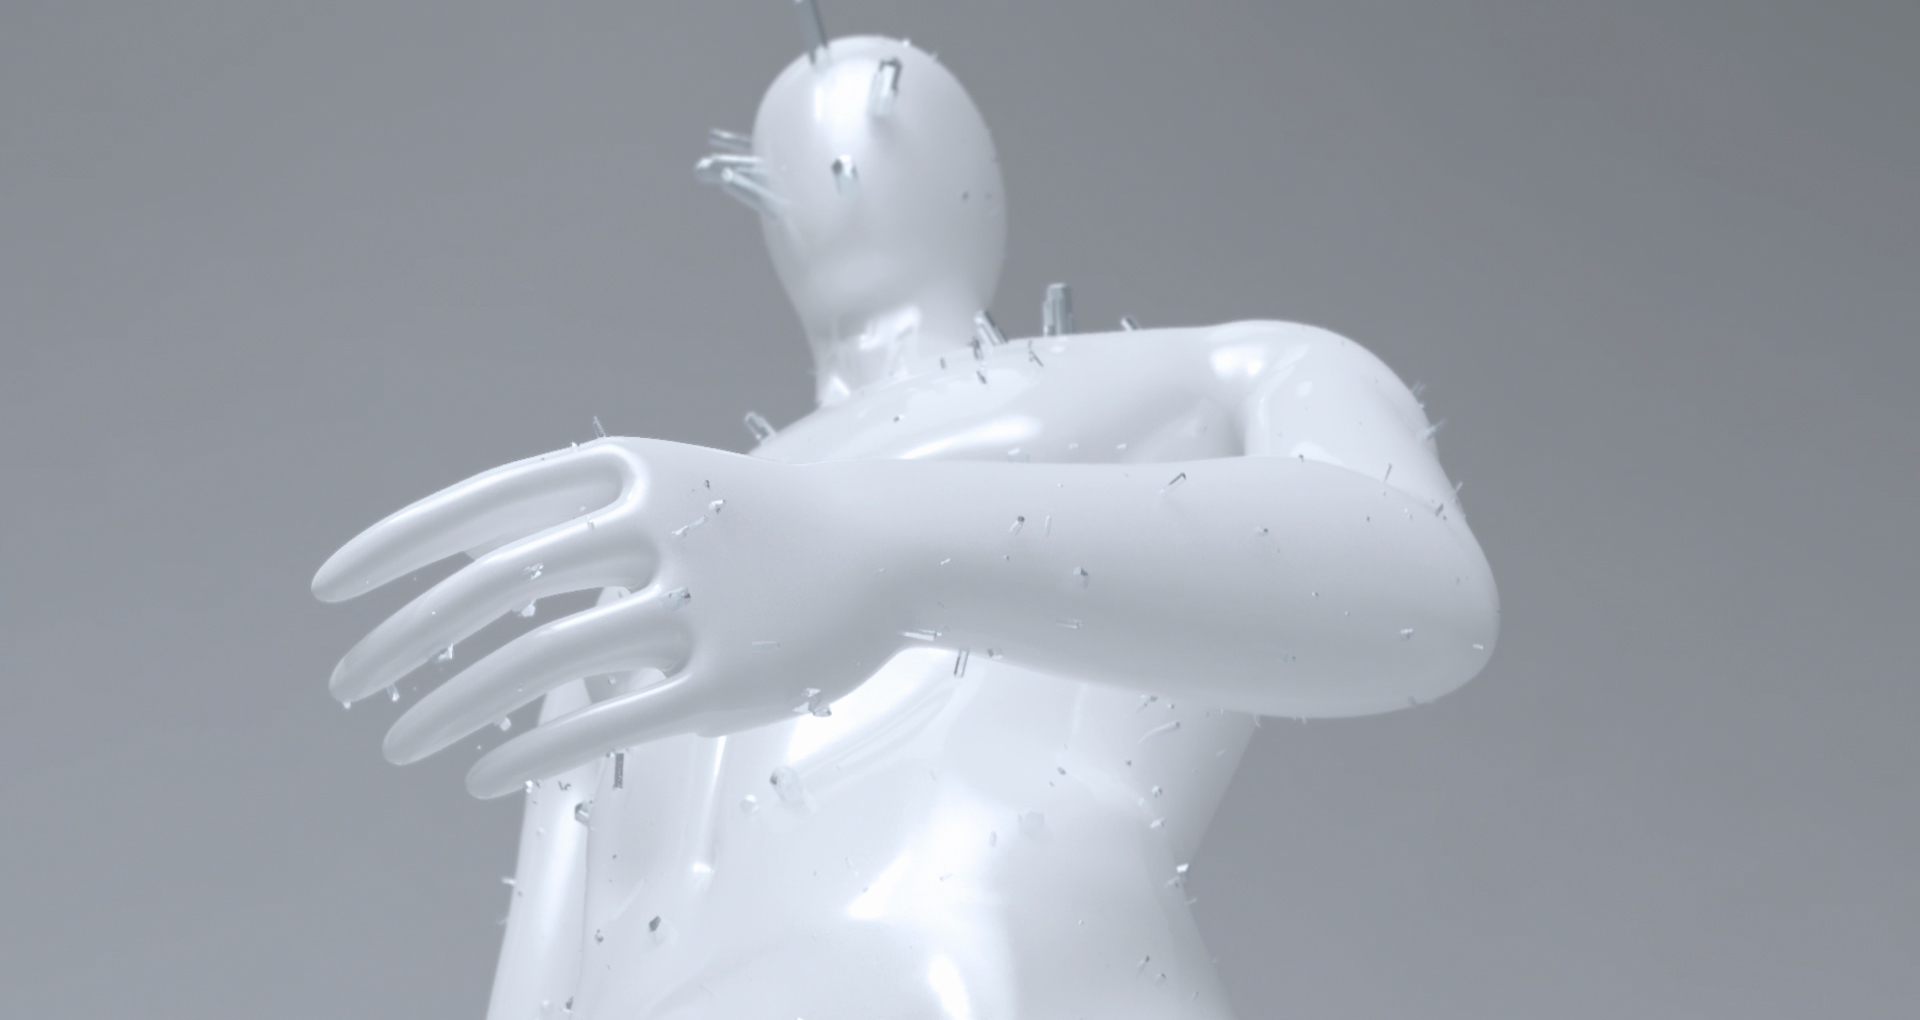 Transform medical information into an emotional 3D video